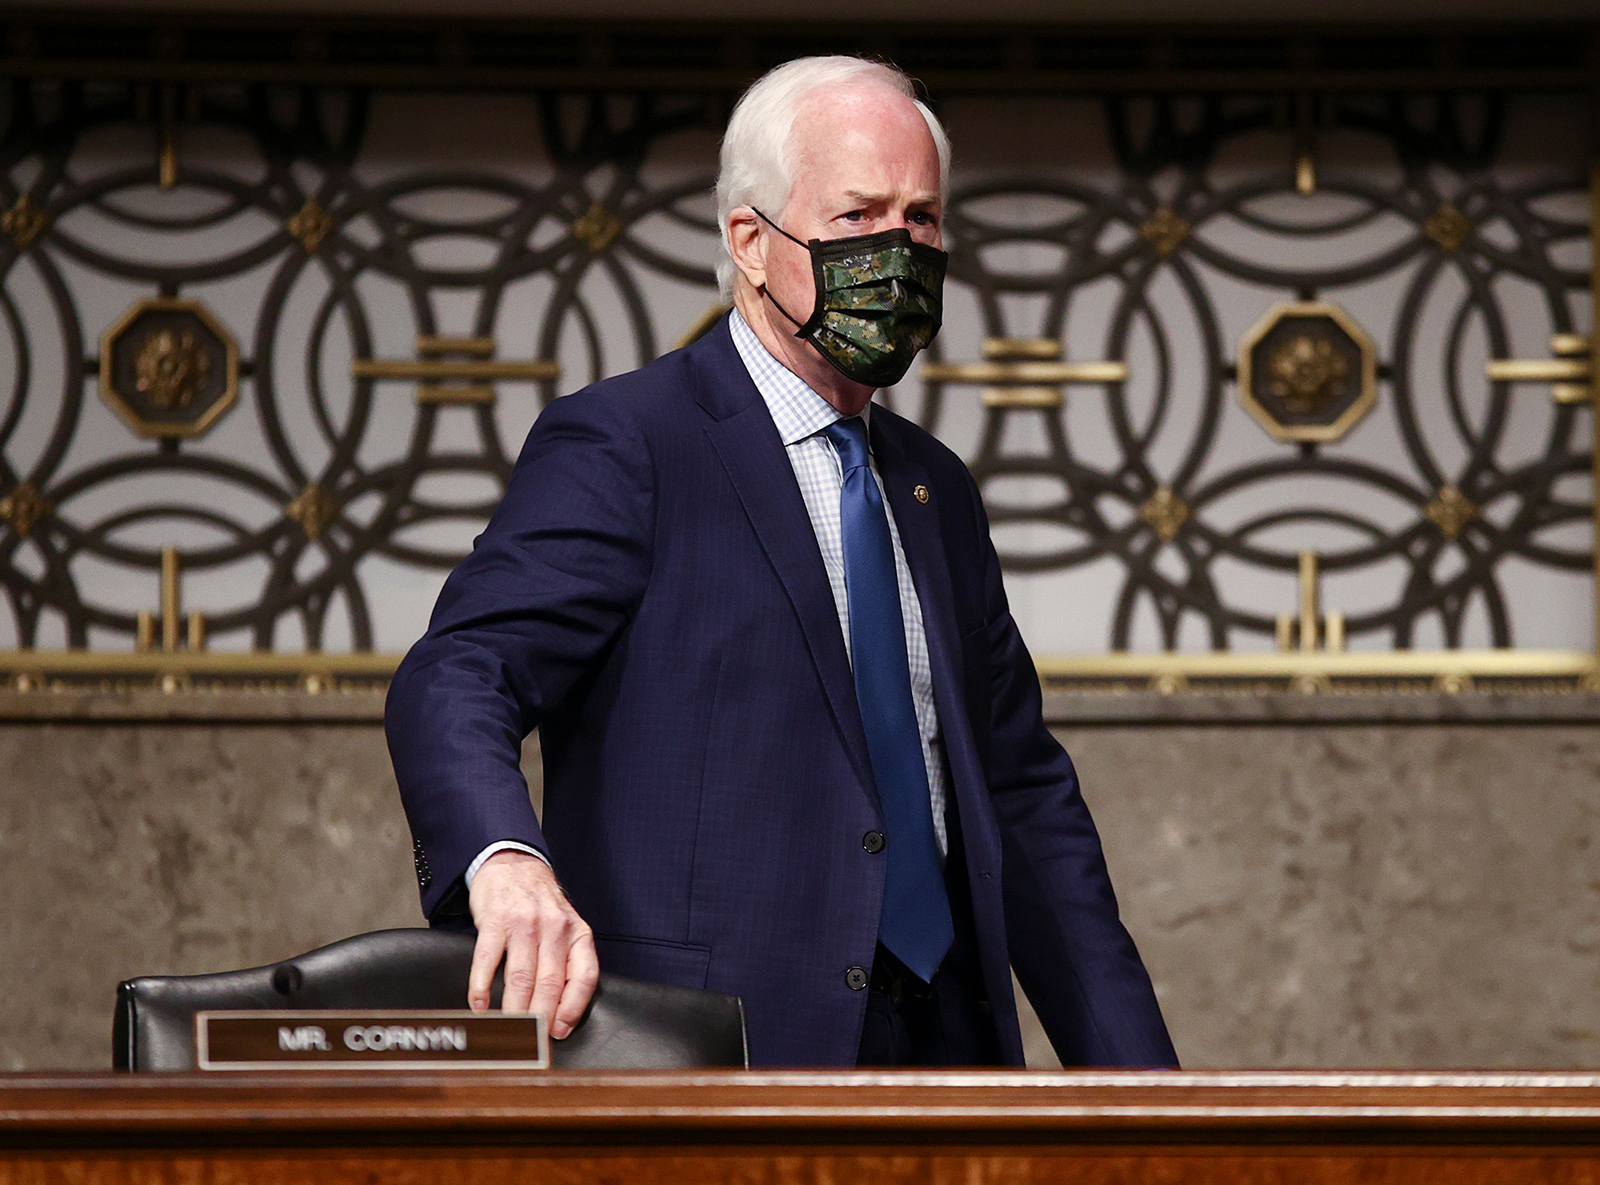 Senator John Cornyn of Texas arrives during the Senate Judiciary Committee hearing on November 17, 2020 in Washington, DC.